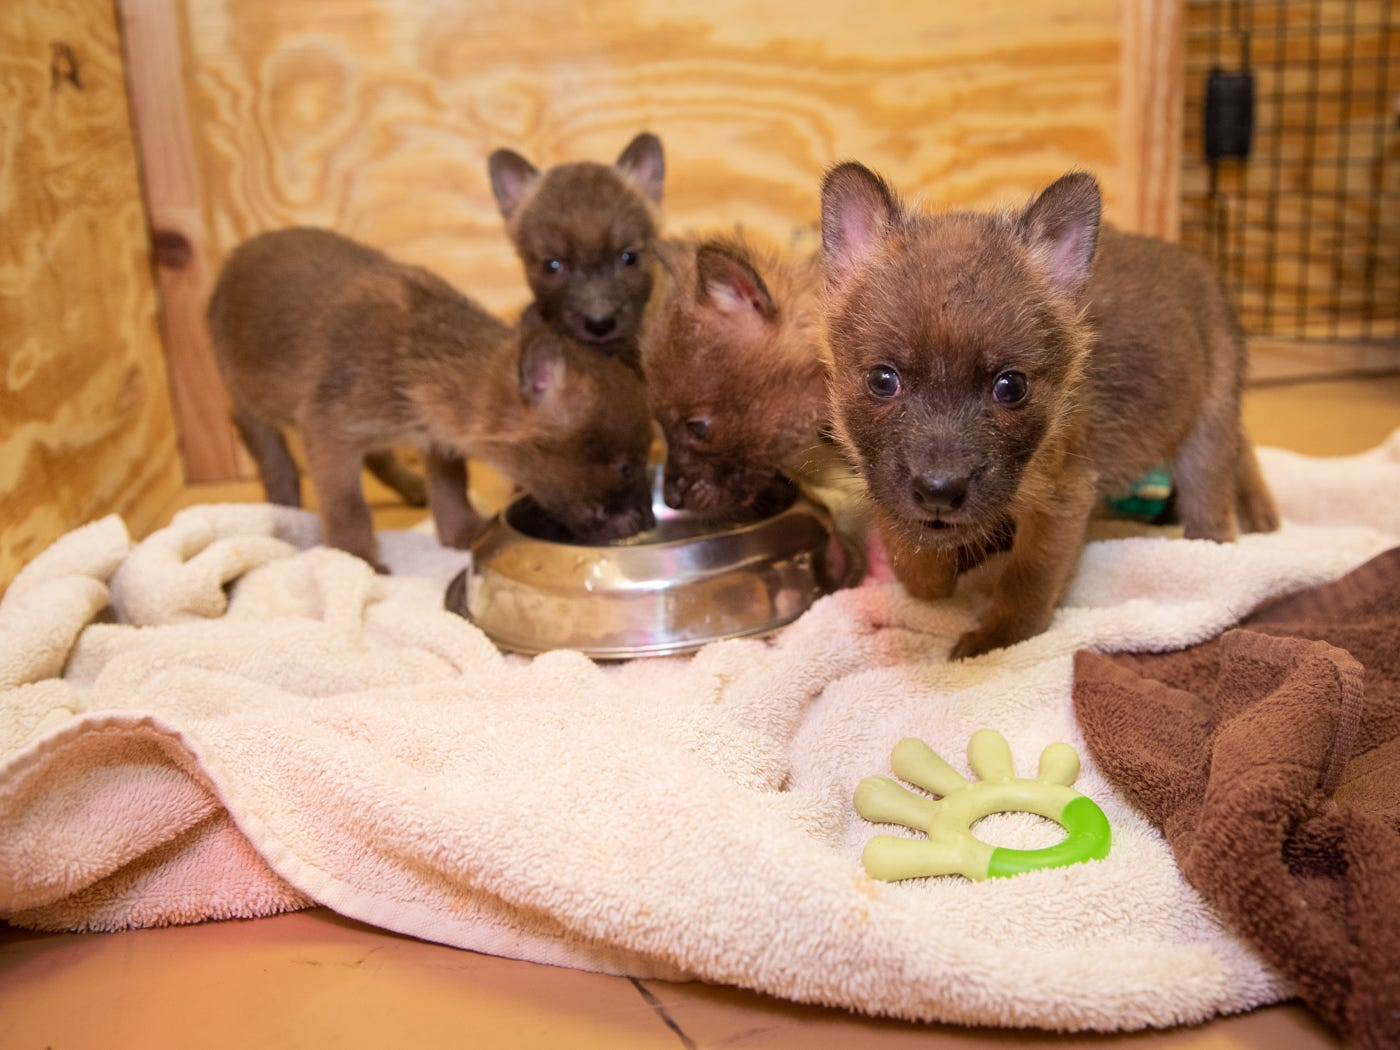 These dhole (Asiatic wild dog) pups were born Feb. 16 and can be seen in The Wilds, a nonprofit safari park and conservation center in Columbus, Ohio.